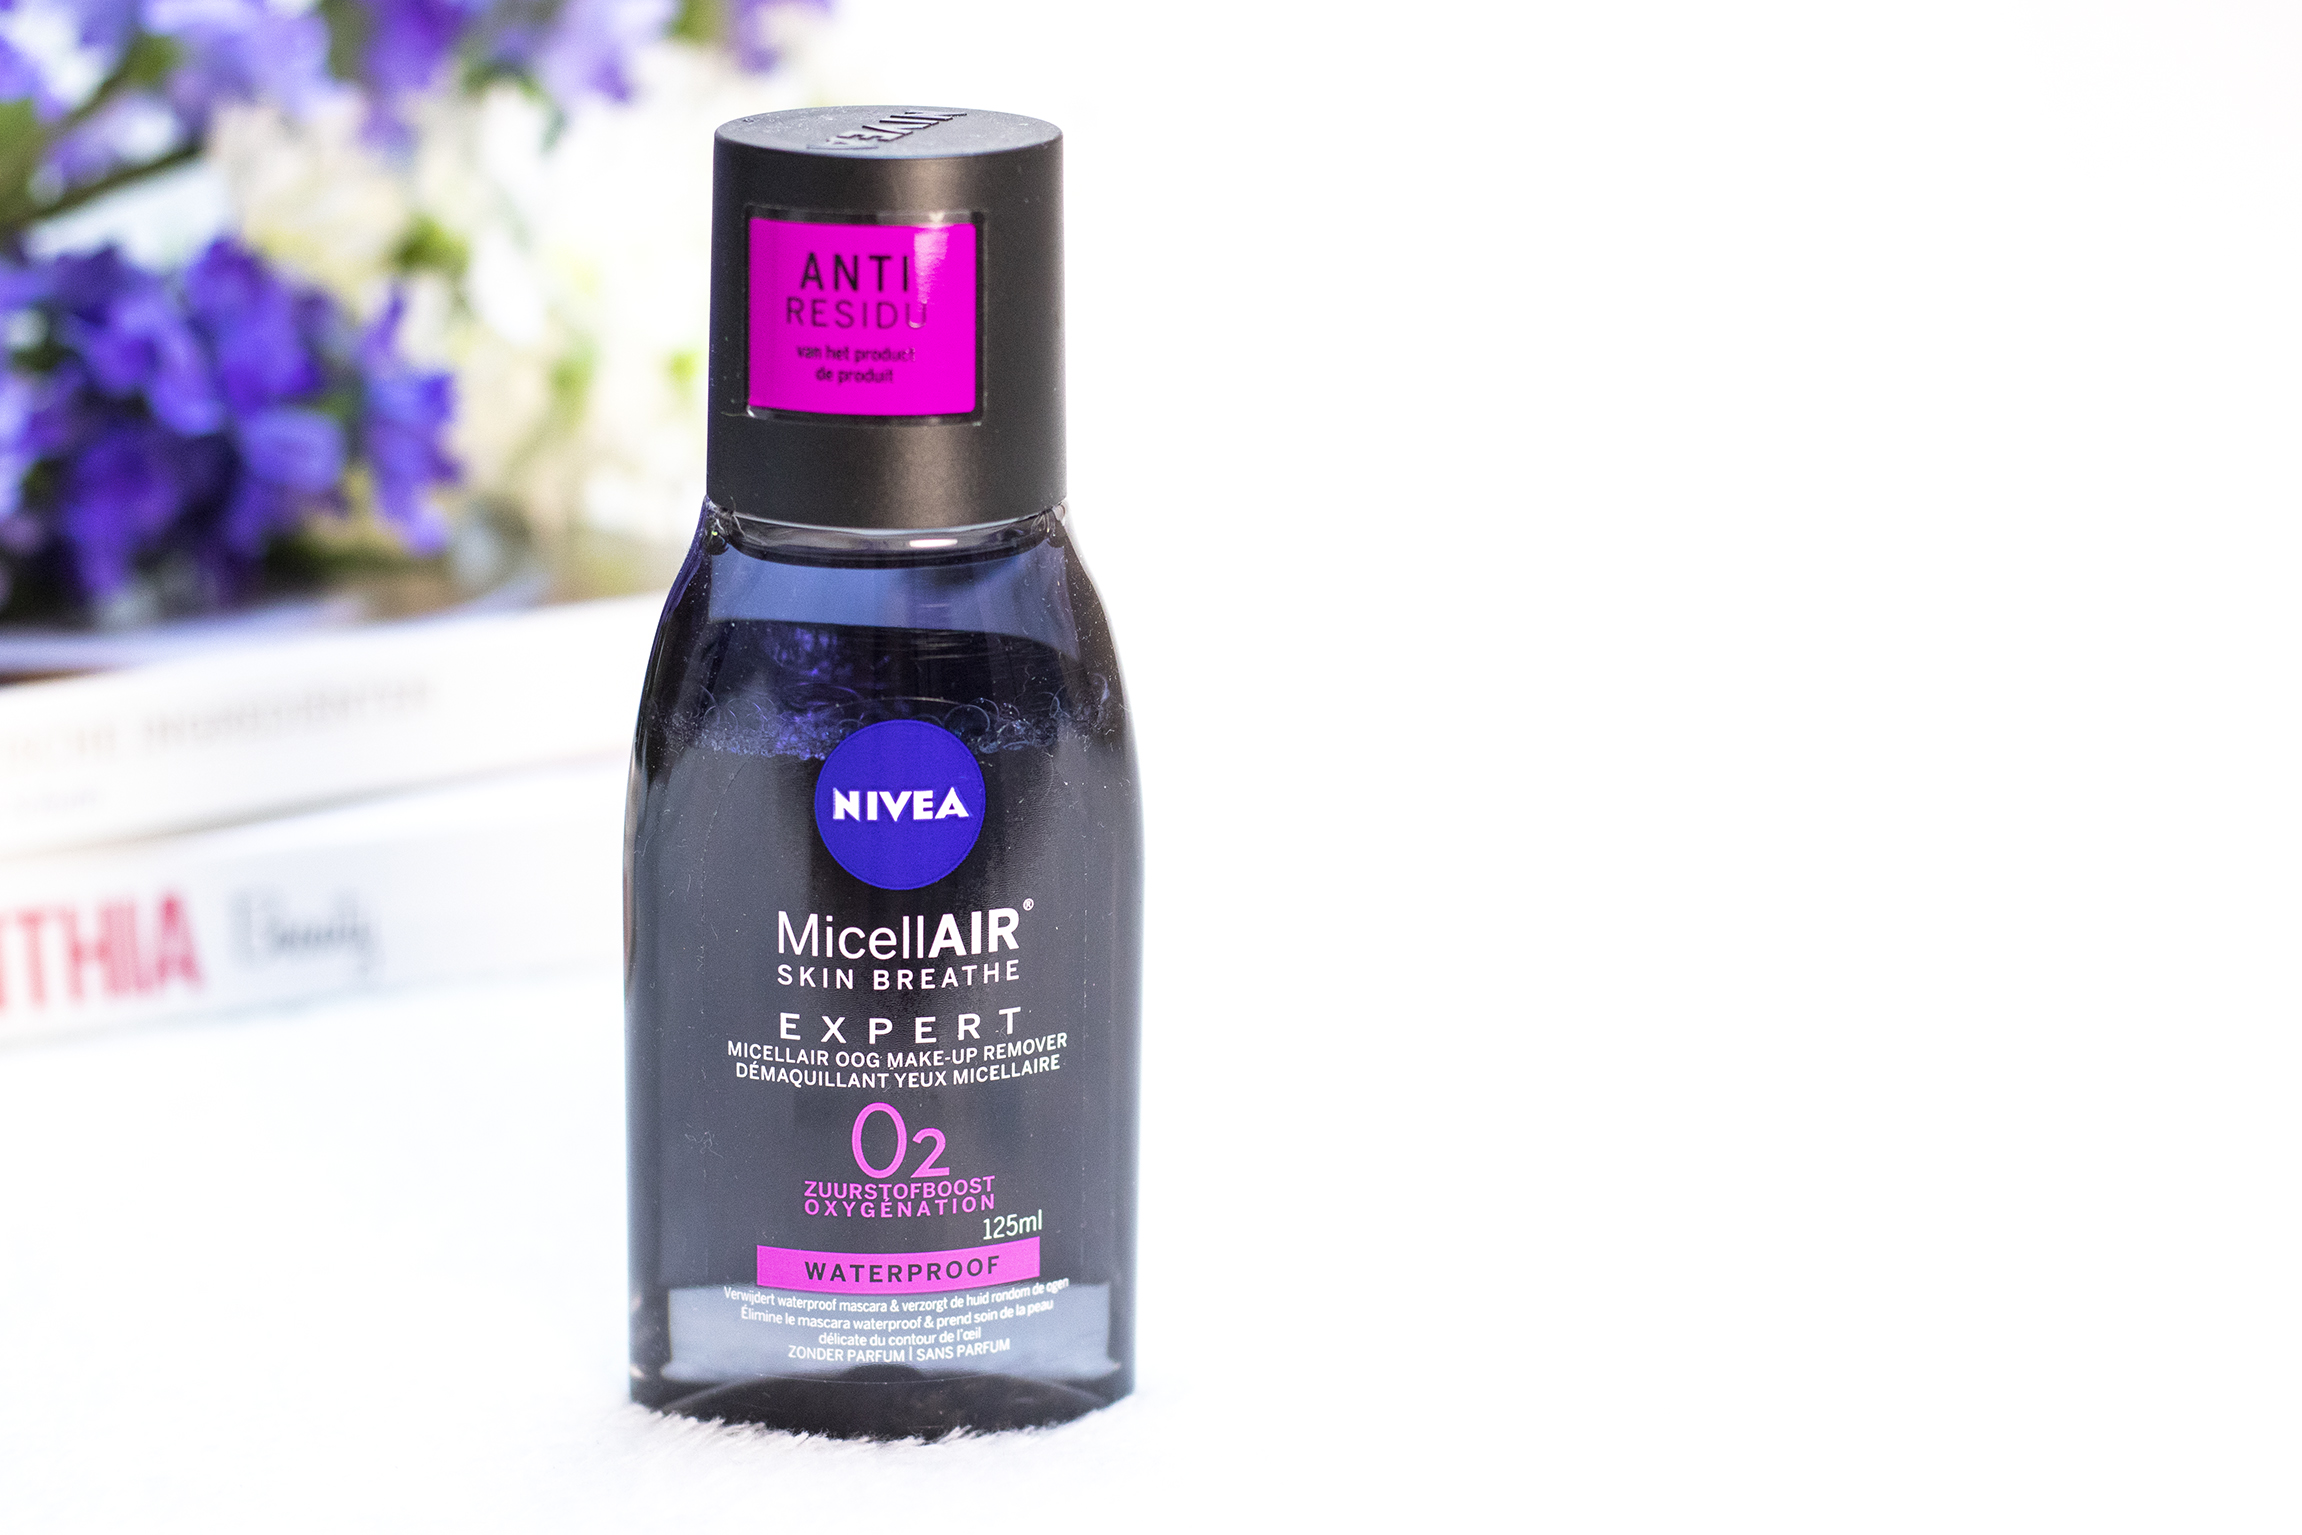 Nivea Micellair oog make-up remover review